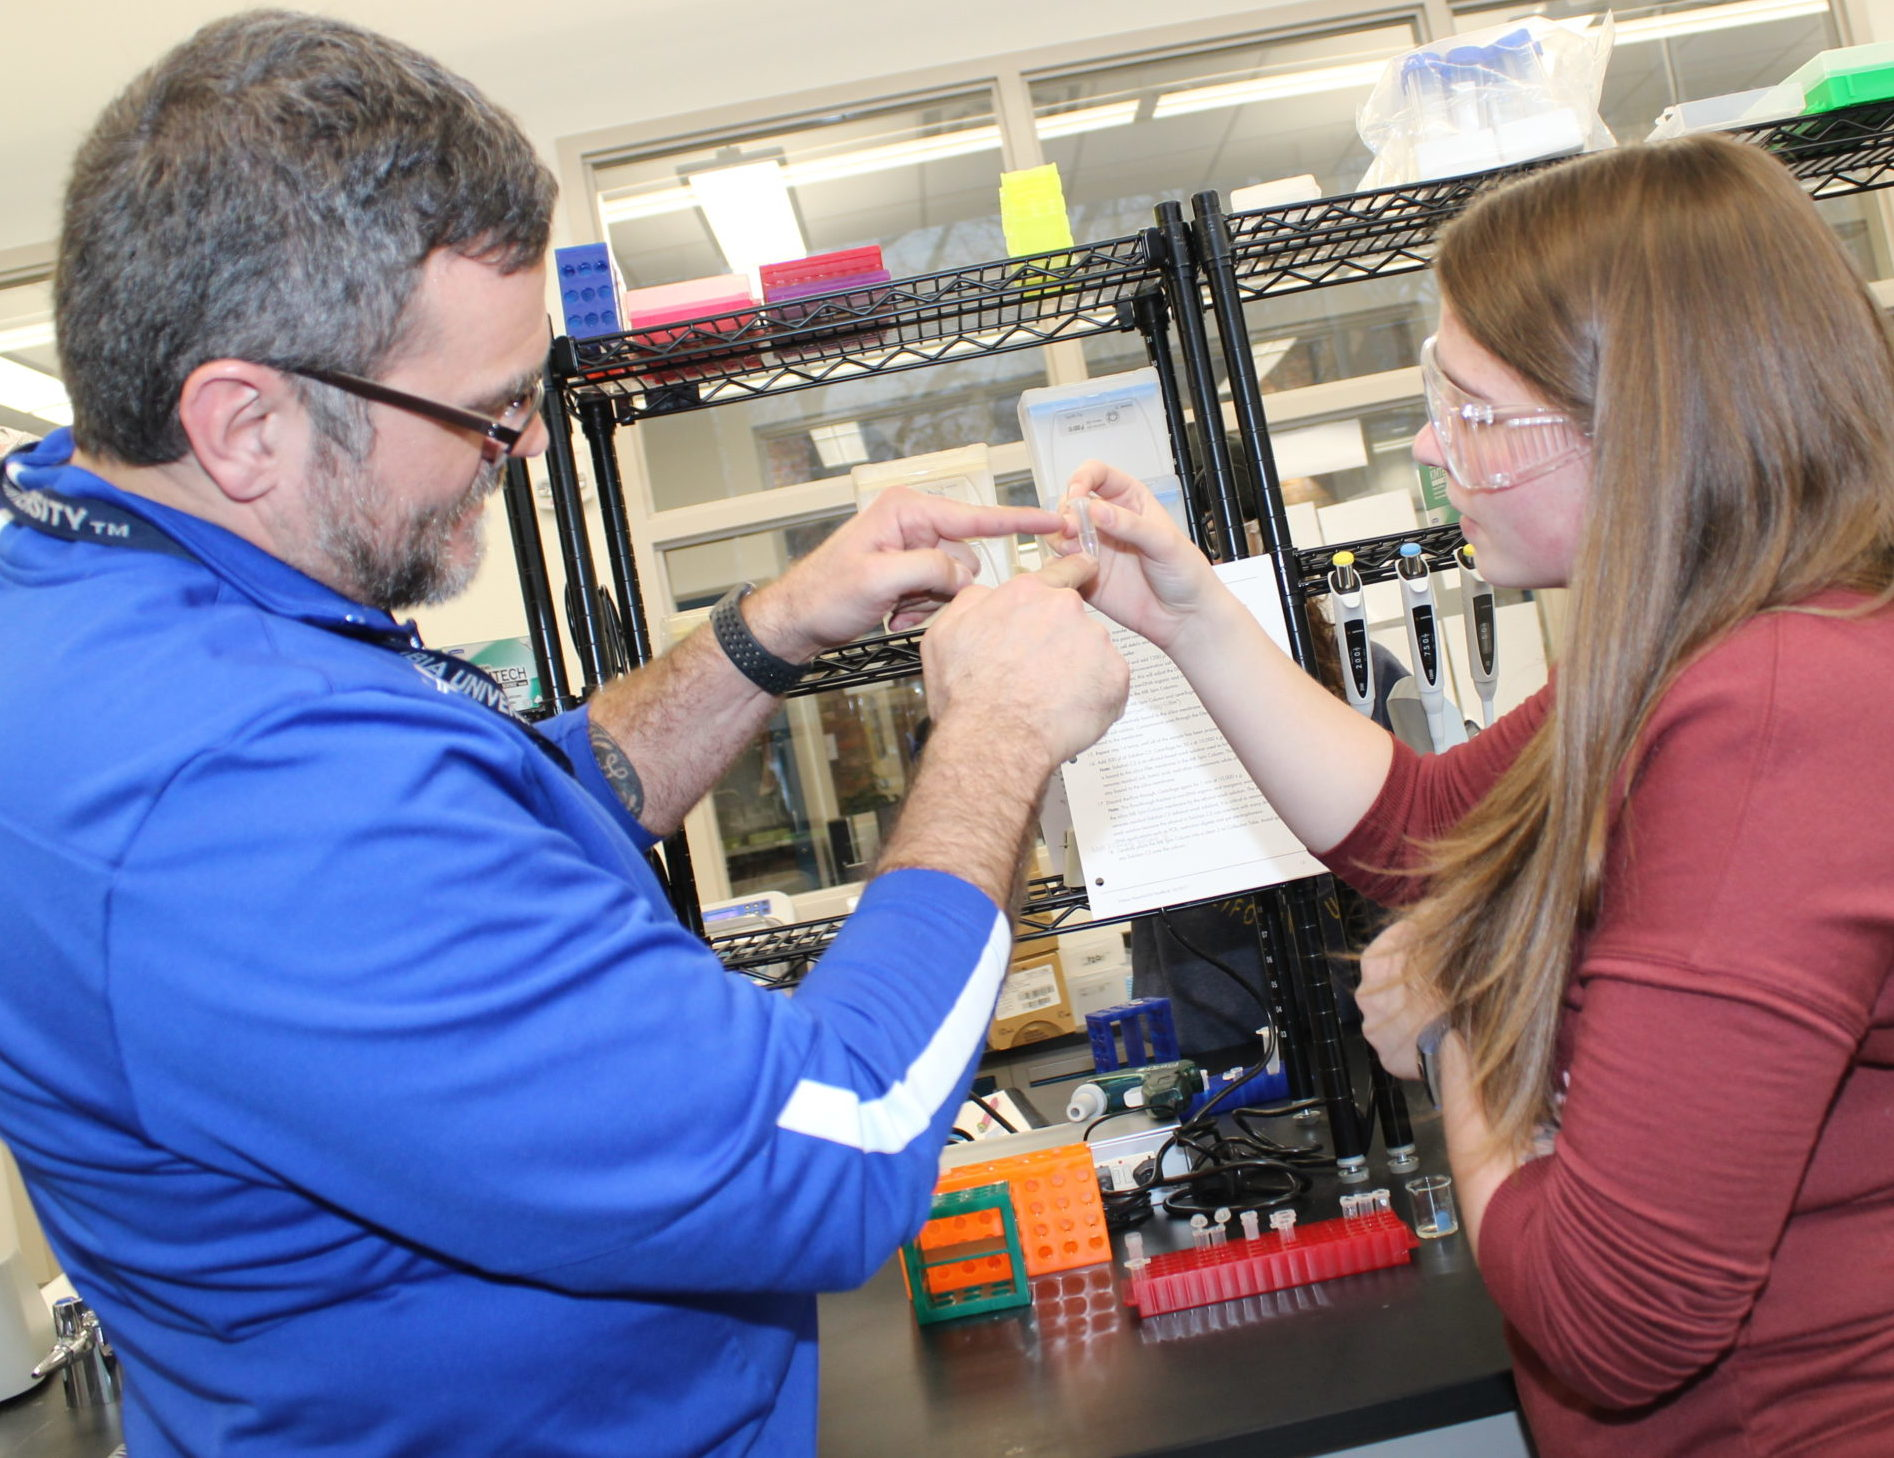 MCC Biology Instructor Darren Mattone with MCC student researcher Jordyn Hallberg in 2019. Hallberg is now studying biology at Central Michigan University.